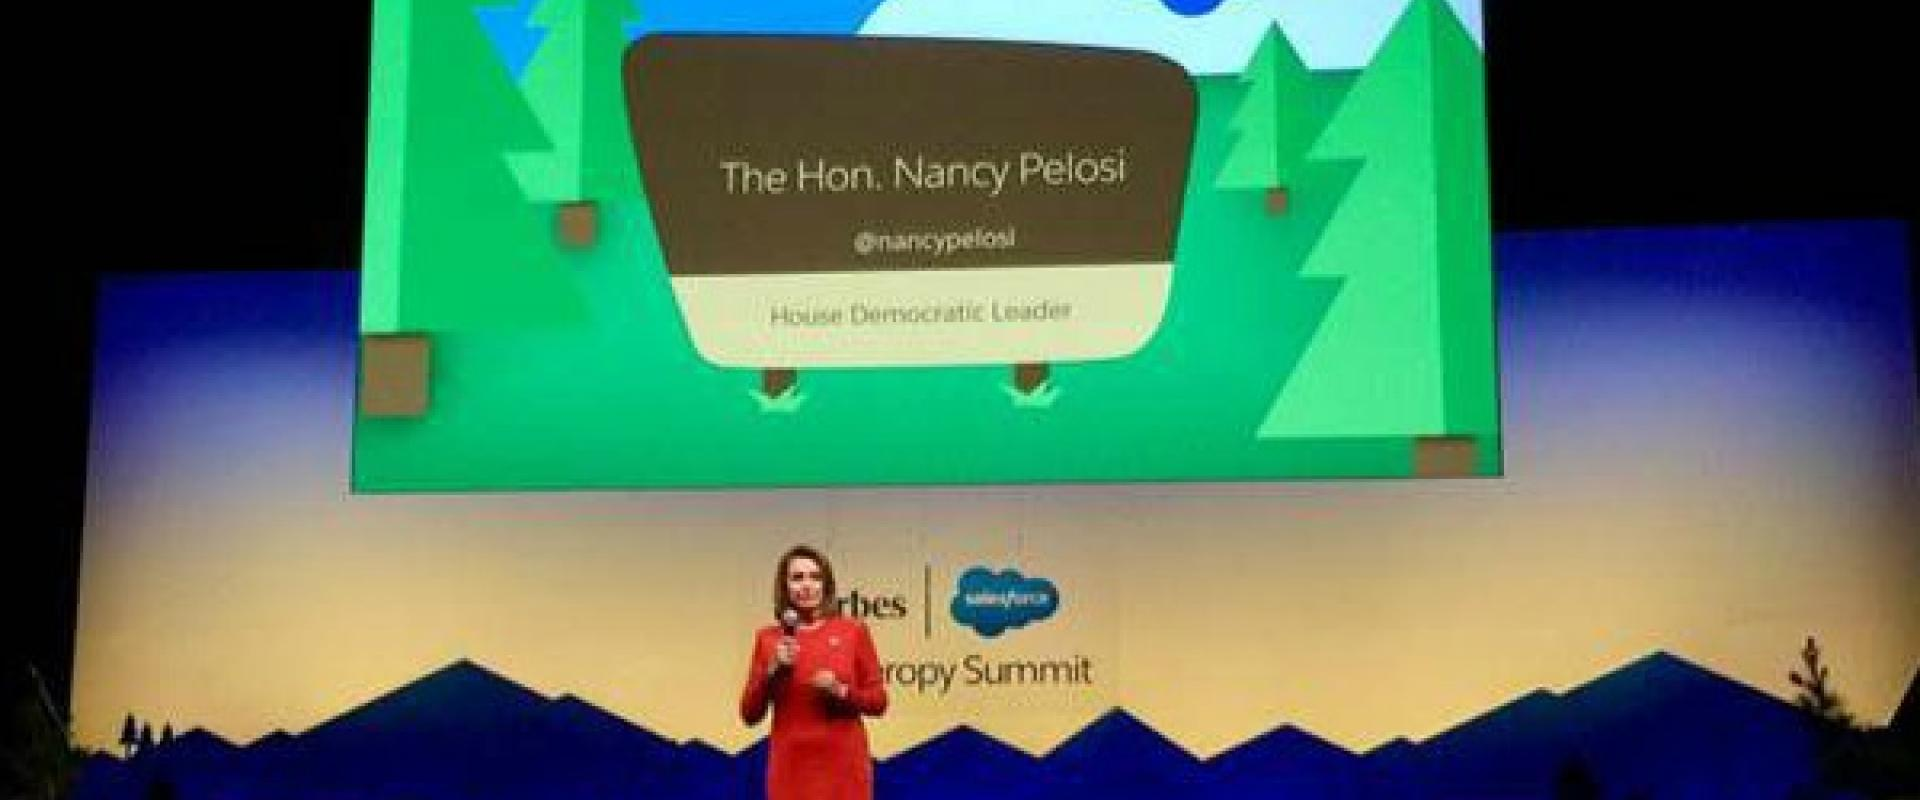 Congresswoman Pelosi delivered remarks on the global fight against HIV/AIDS at the Dreamforce Summit in San Francisco, stating that bold progress requires bold leadership.